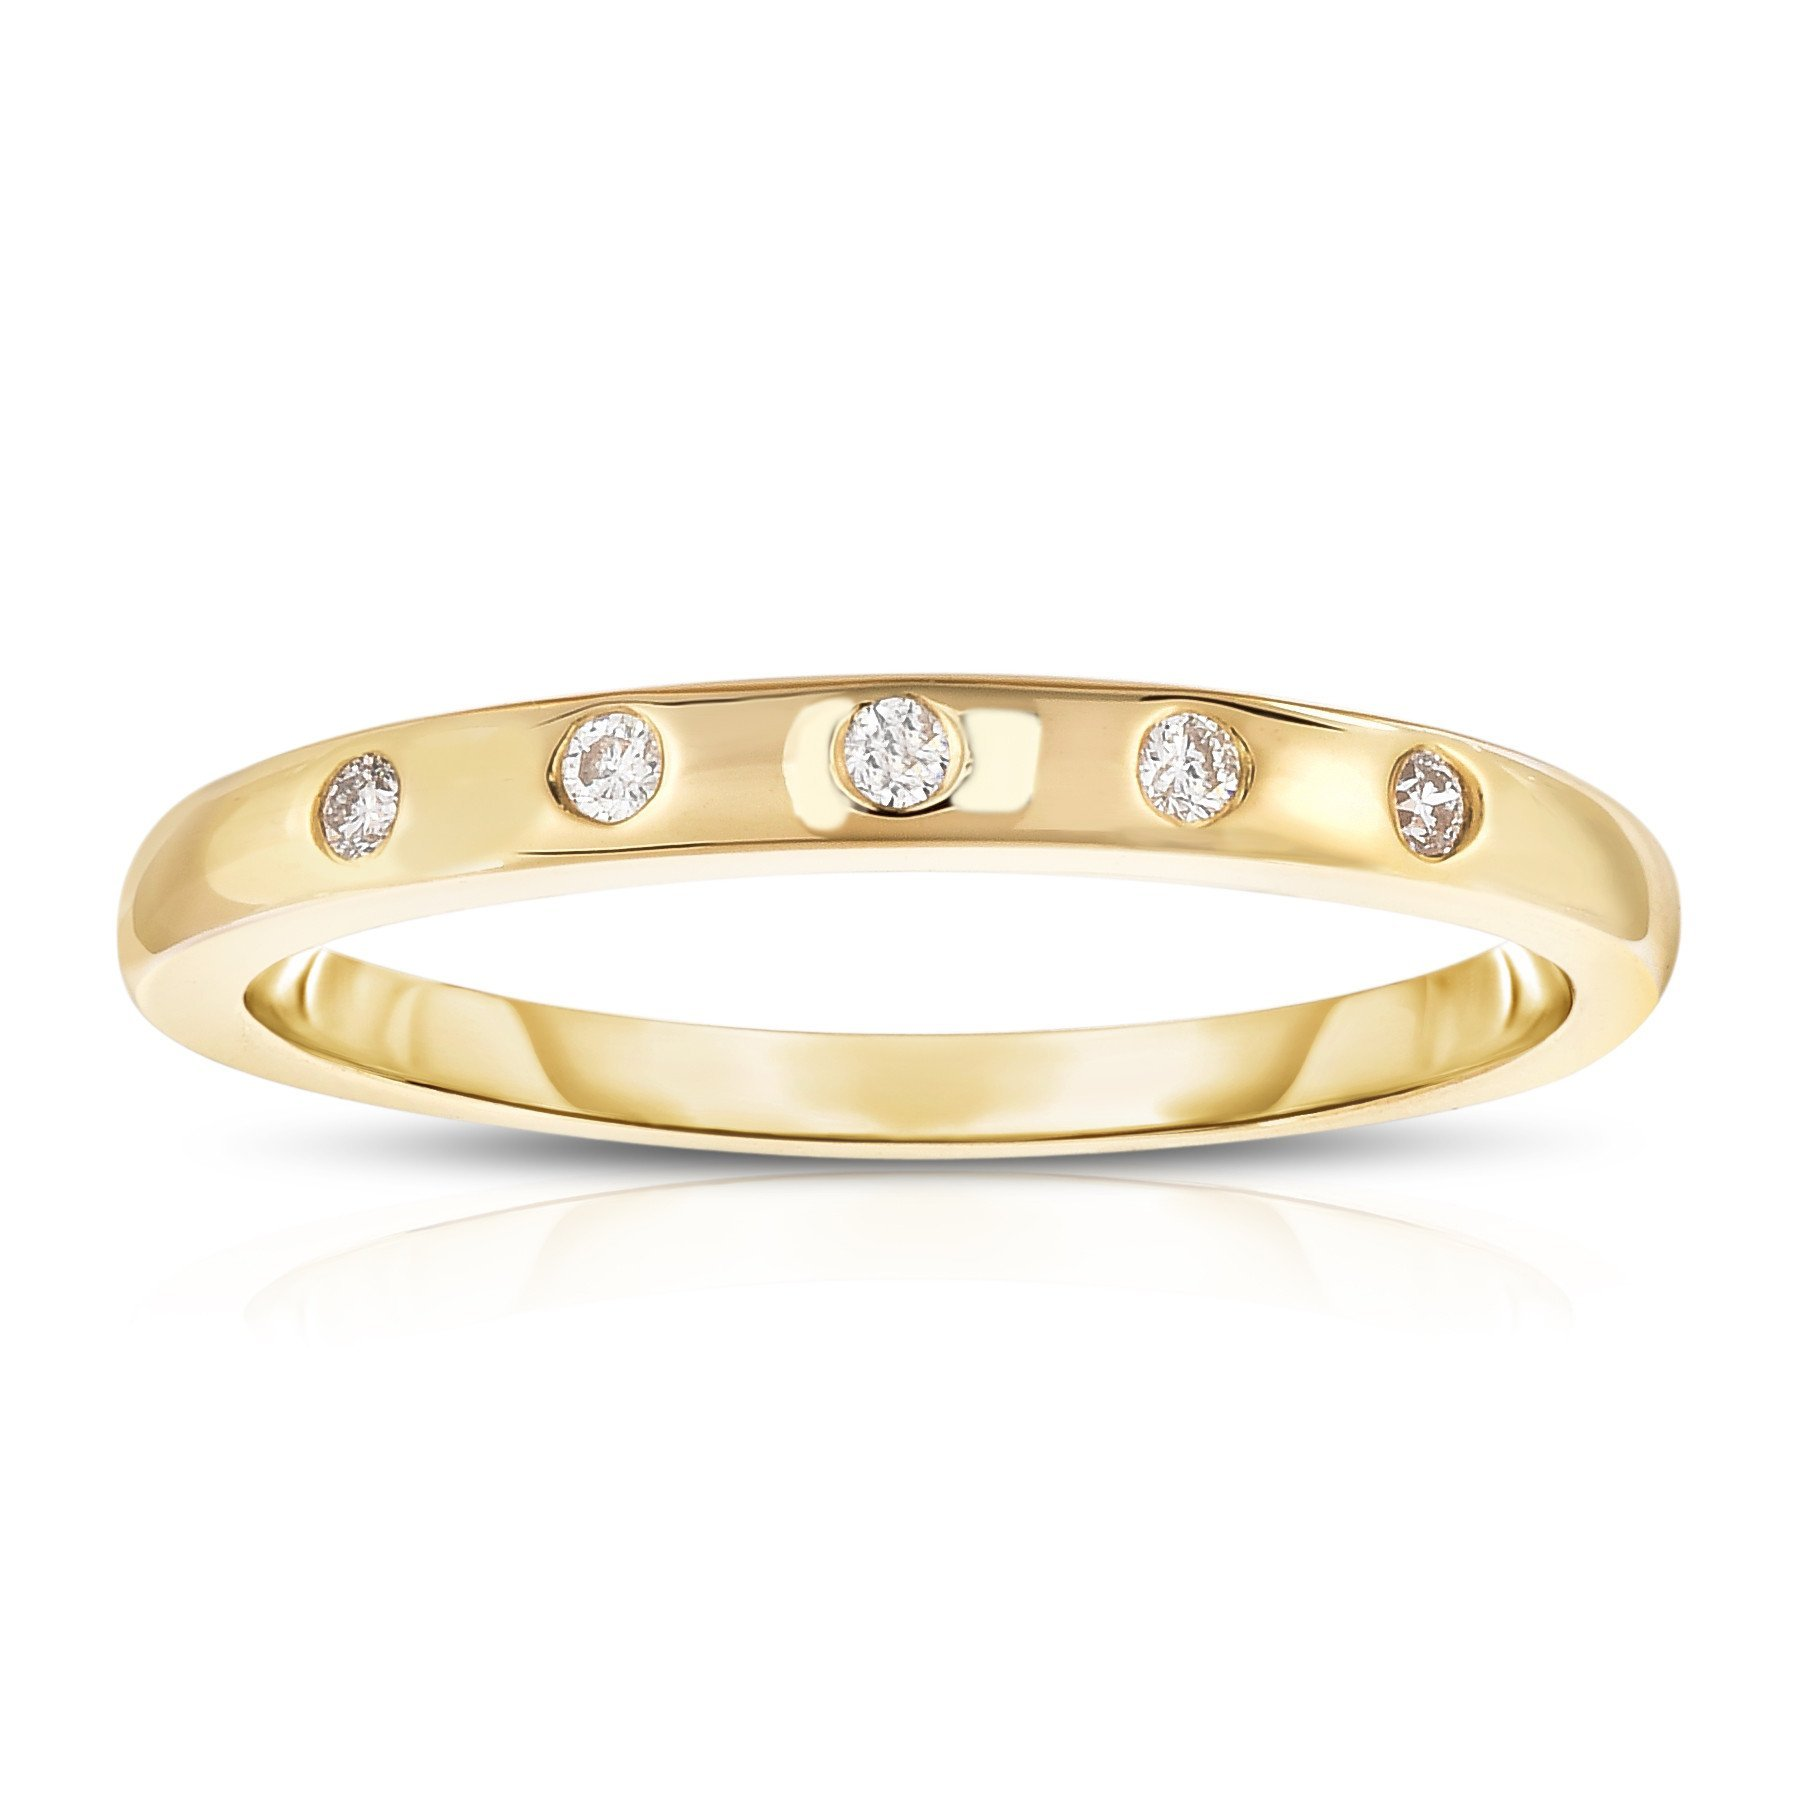 Noray Designs 14K Yellow Gold (0.06 Ct, G-H, SI2-I1 Clarity) Stackable Ring. Available in sizes 4 to 9.